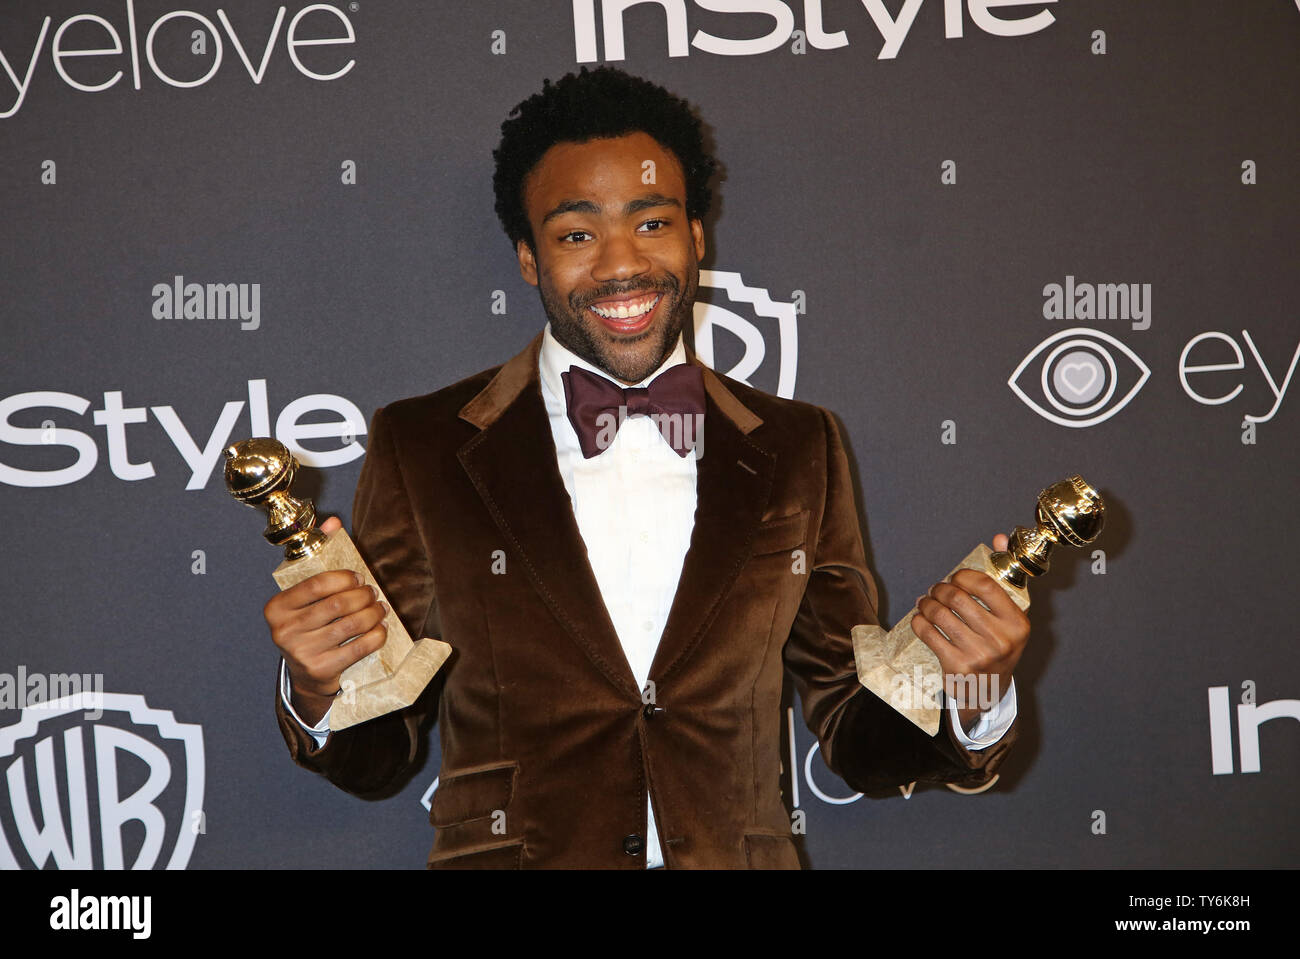 Donald Glover attends the 18th annual InStyle and Warner Bros. Golden Globe after-party at the Beverly Hilton Hotel in Beverly Hills, California on January 8, 2017.  Photo by David Silpa/UPI - Stock Image